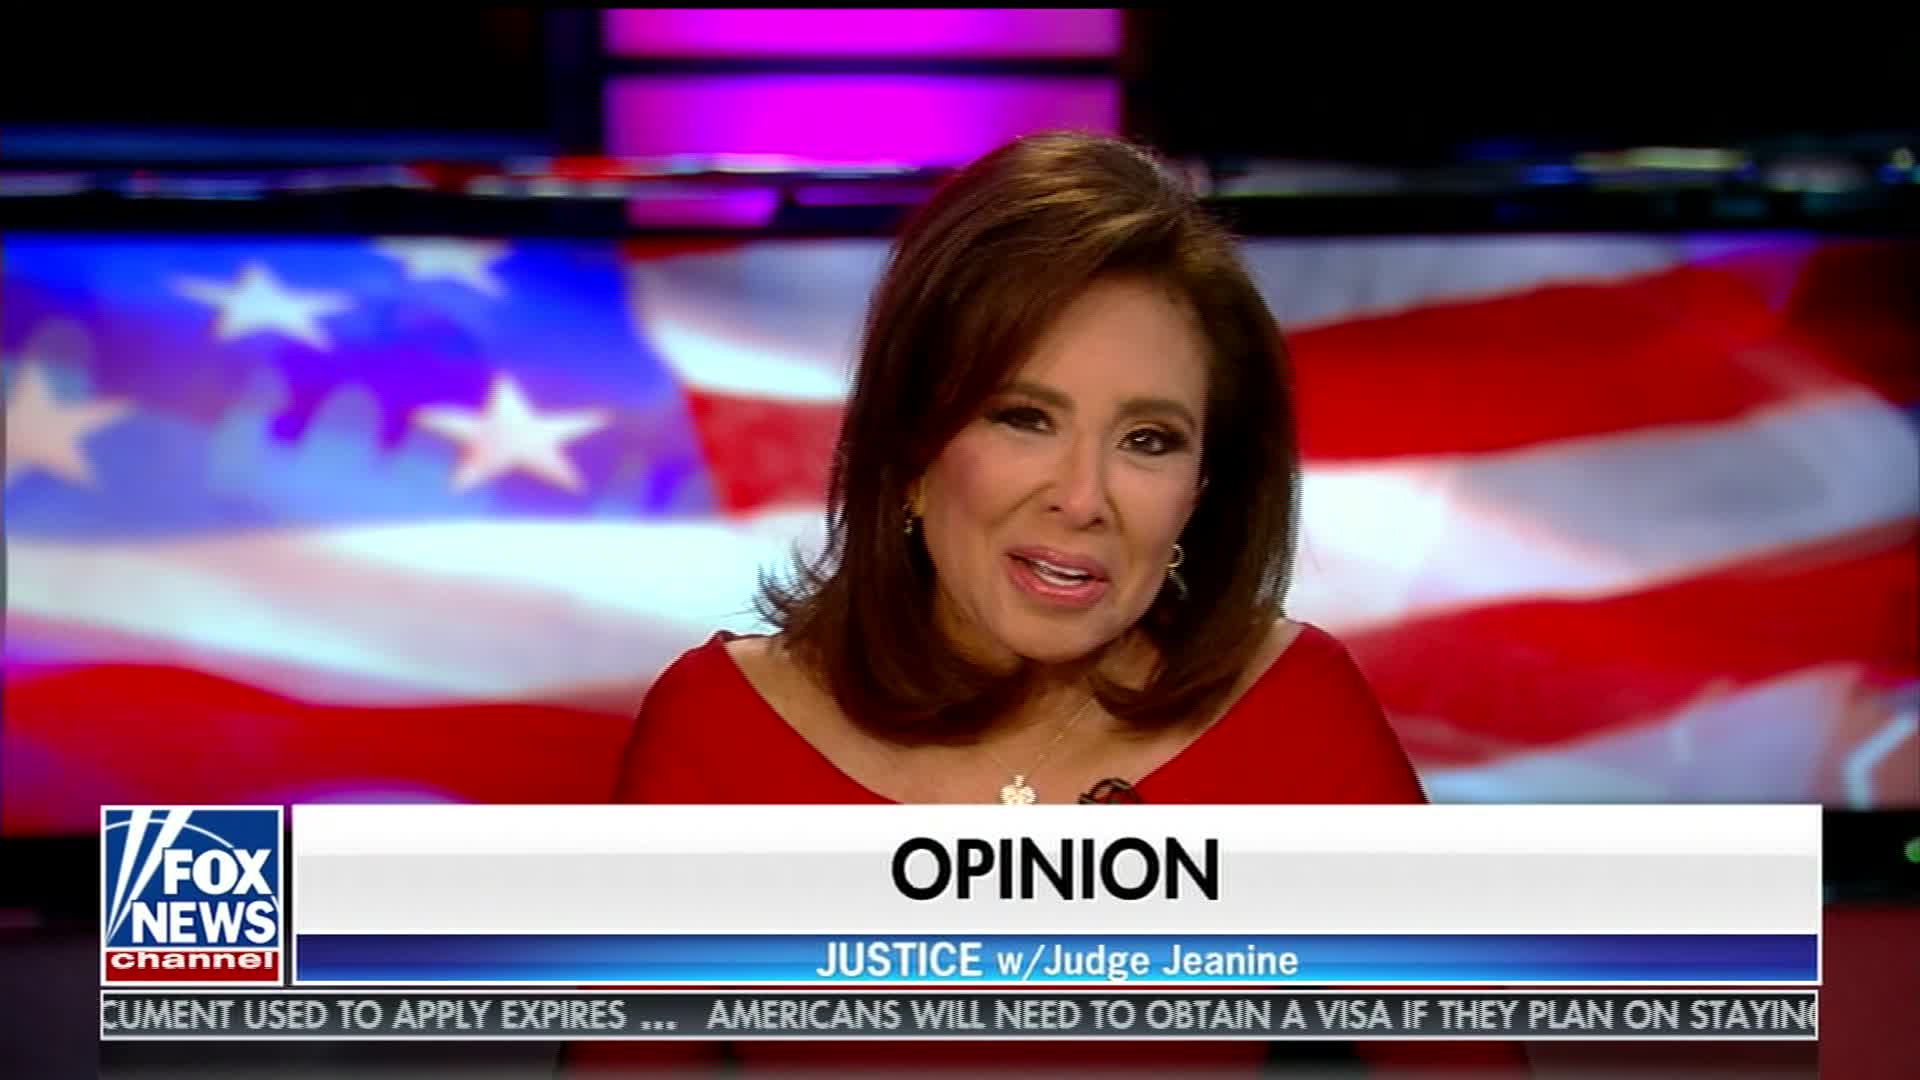 Fox News host Judge Jeanine lobbied Trump during his last few hours in office to pardon her ex-husband. It worked.